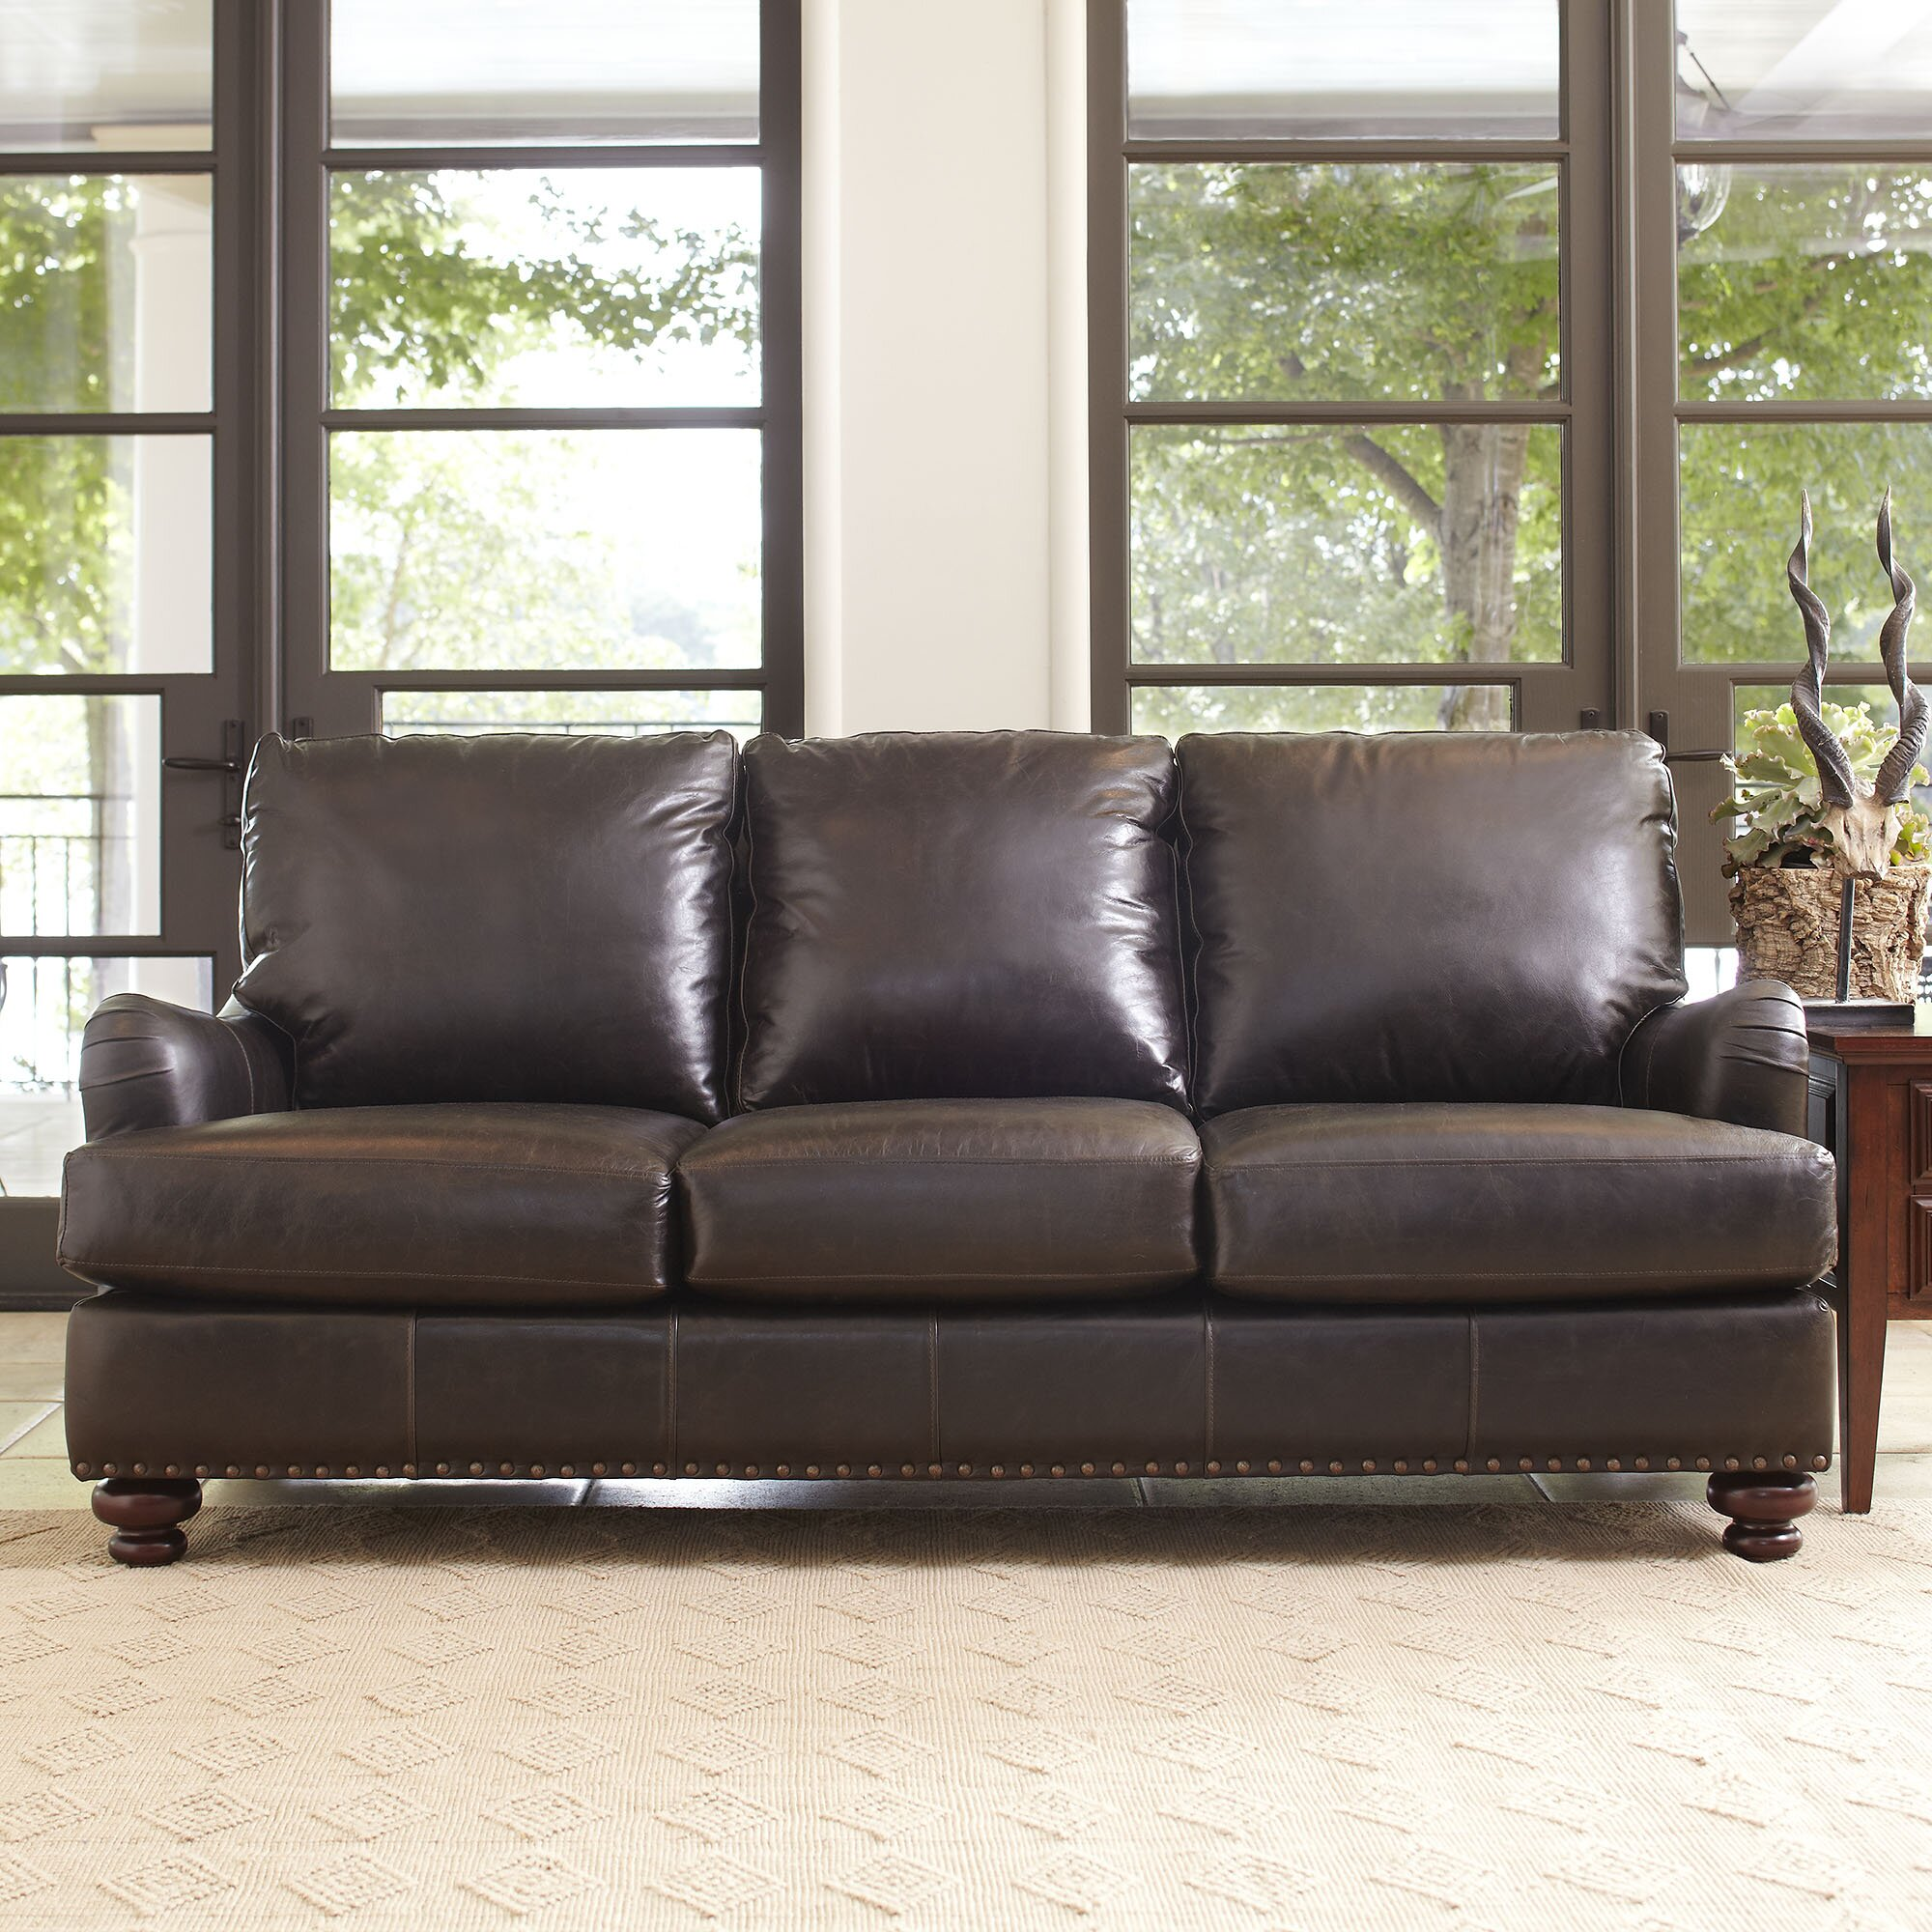 Mason White Leather Sofa: Birch Lane Montgomery Leather Sofa & Reviews